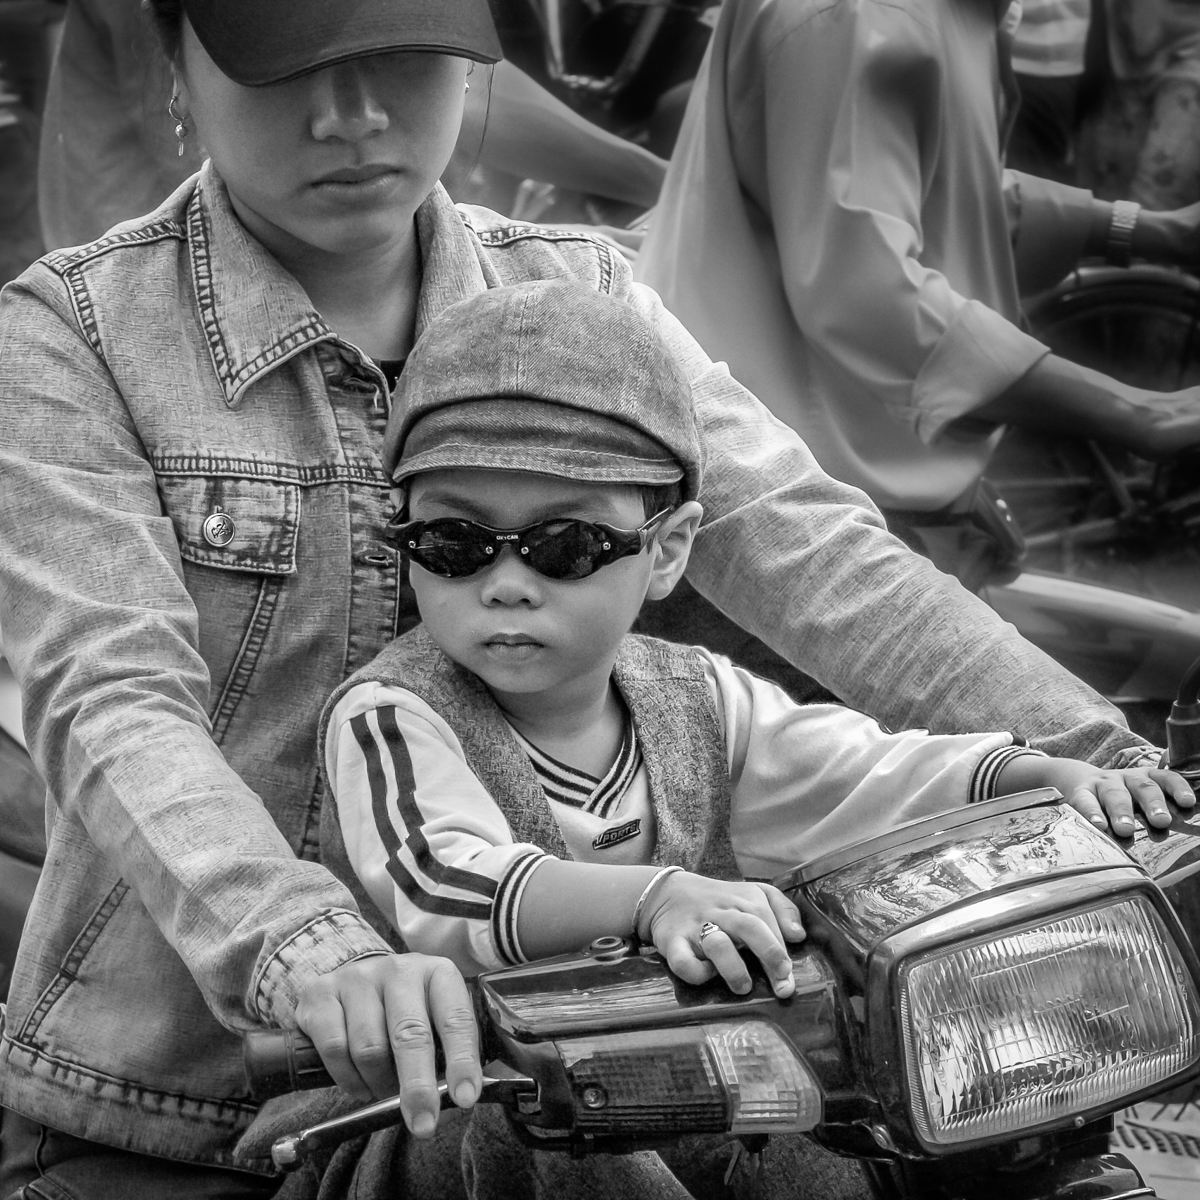 Boy & bike & shades(B&W)